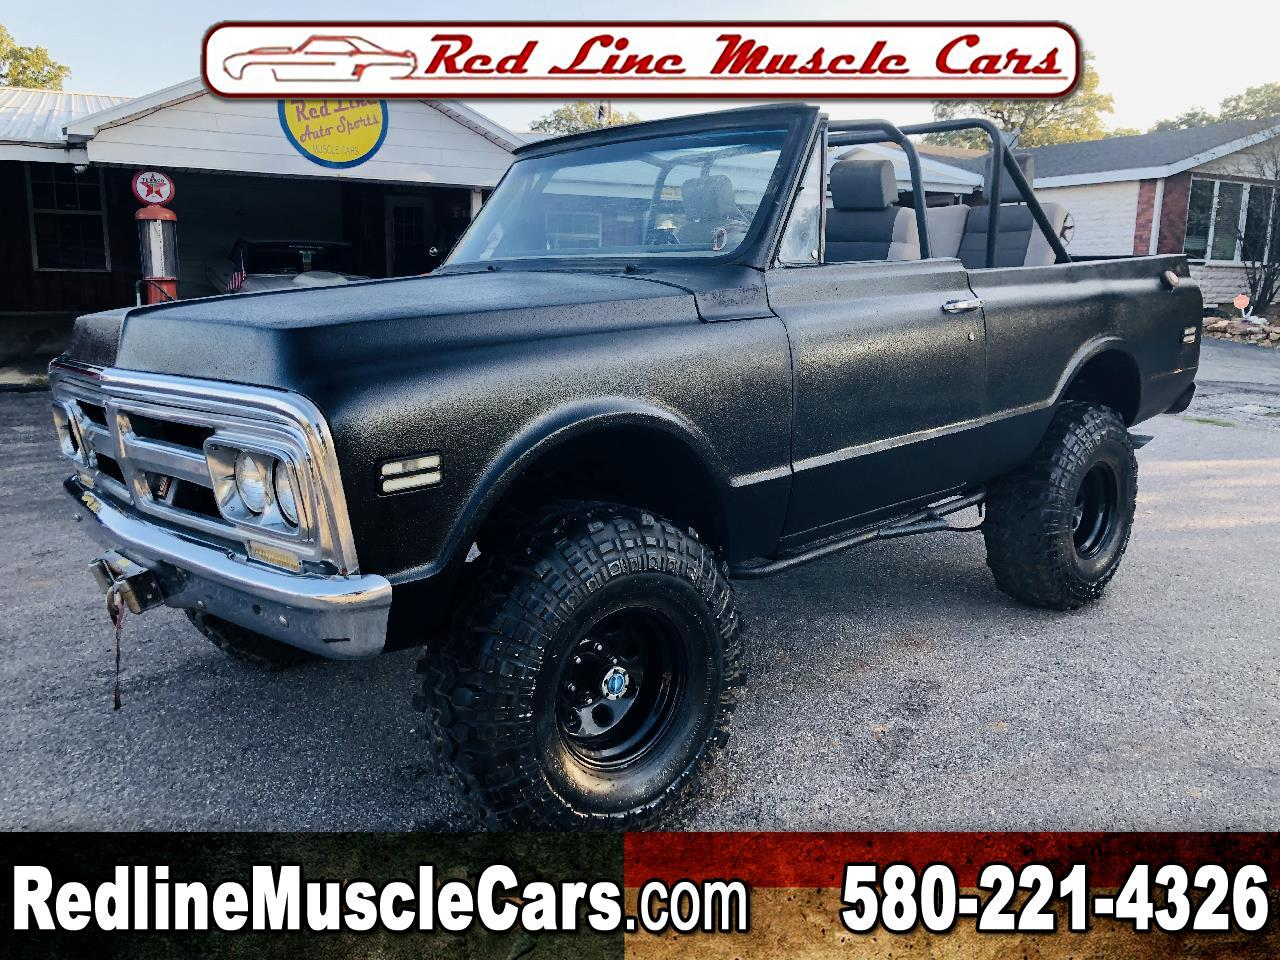 1972 GMC Jimmy C/K 1500 4WD